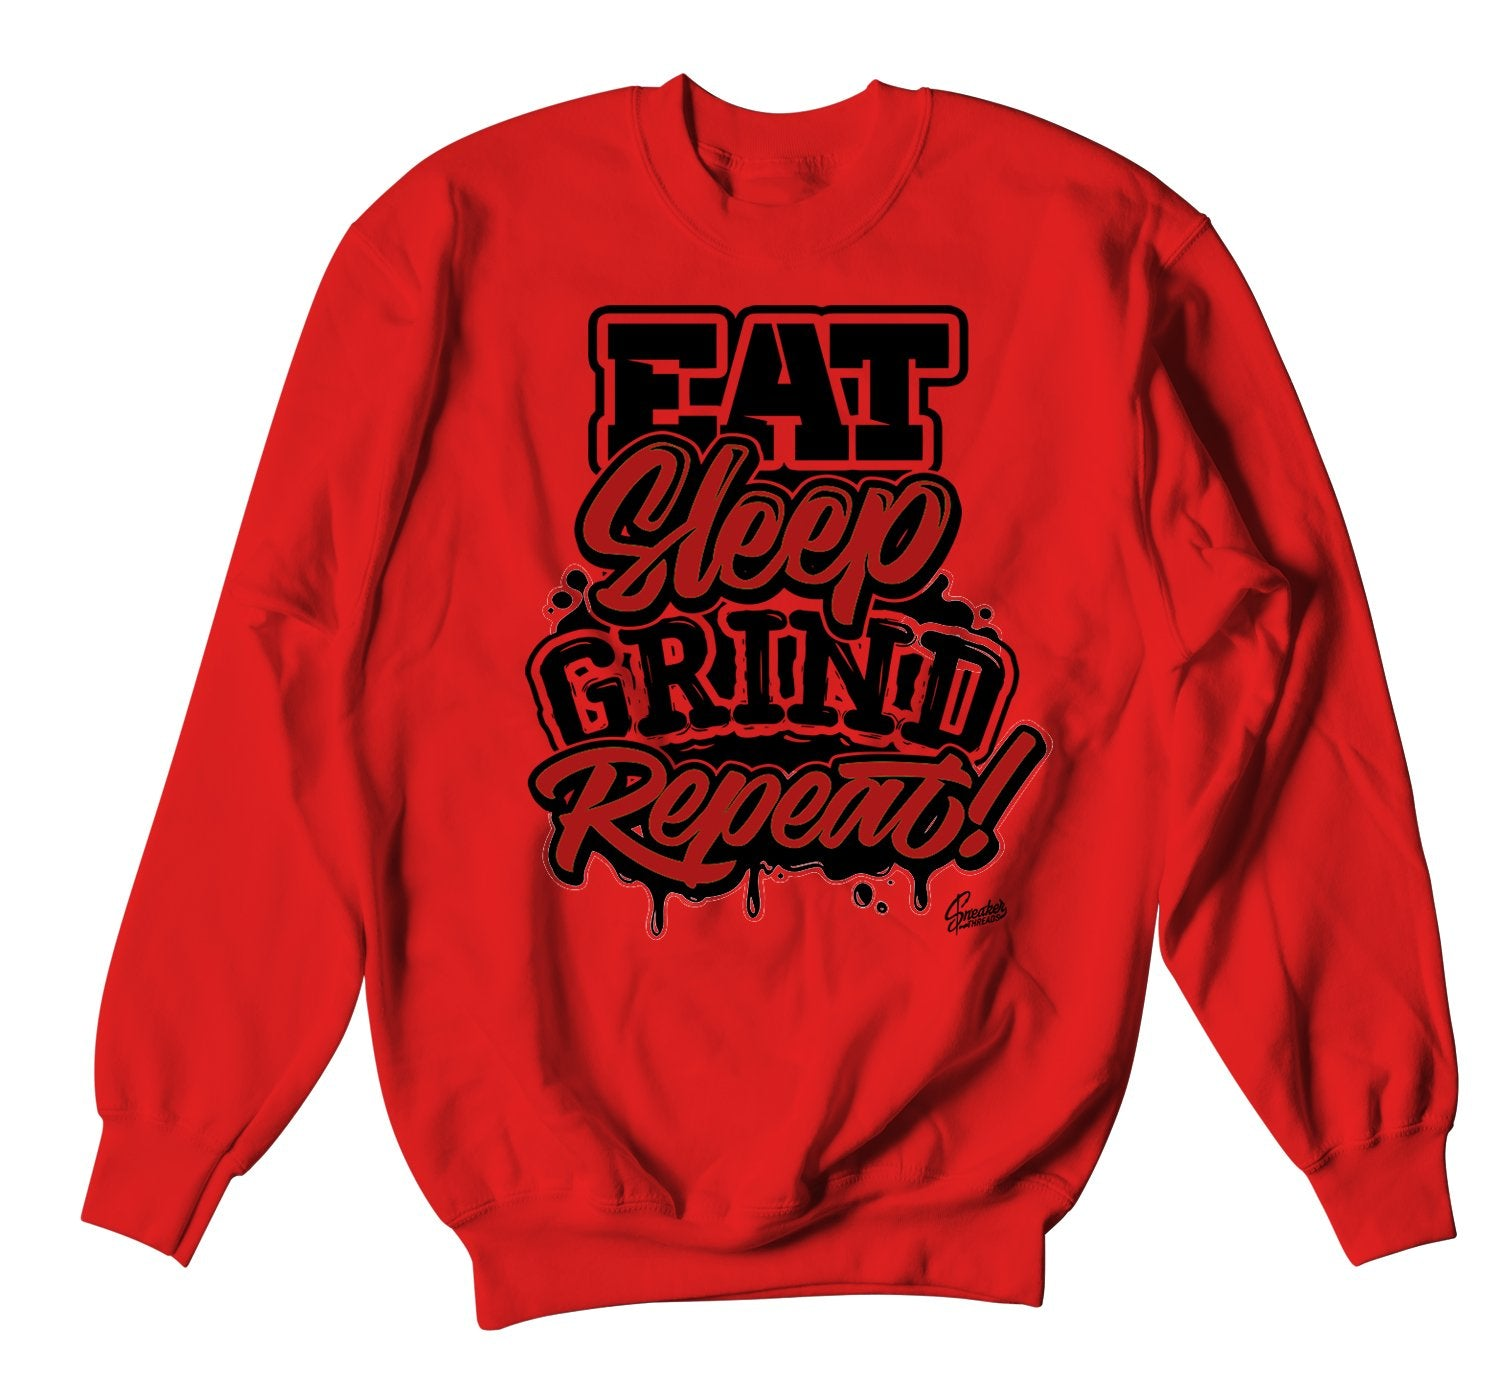 Sweatshirt collection designed to match the red carpet 17s